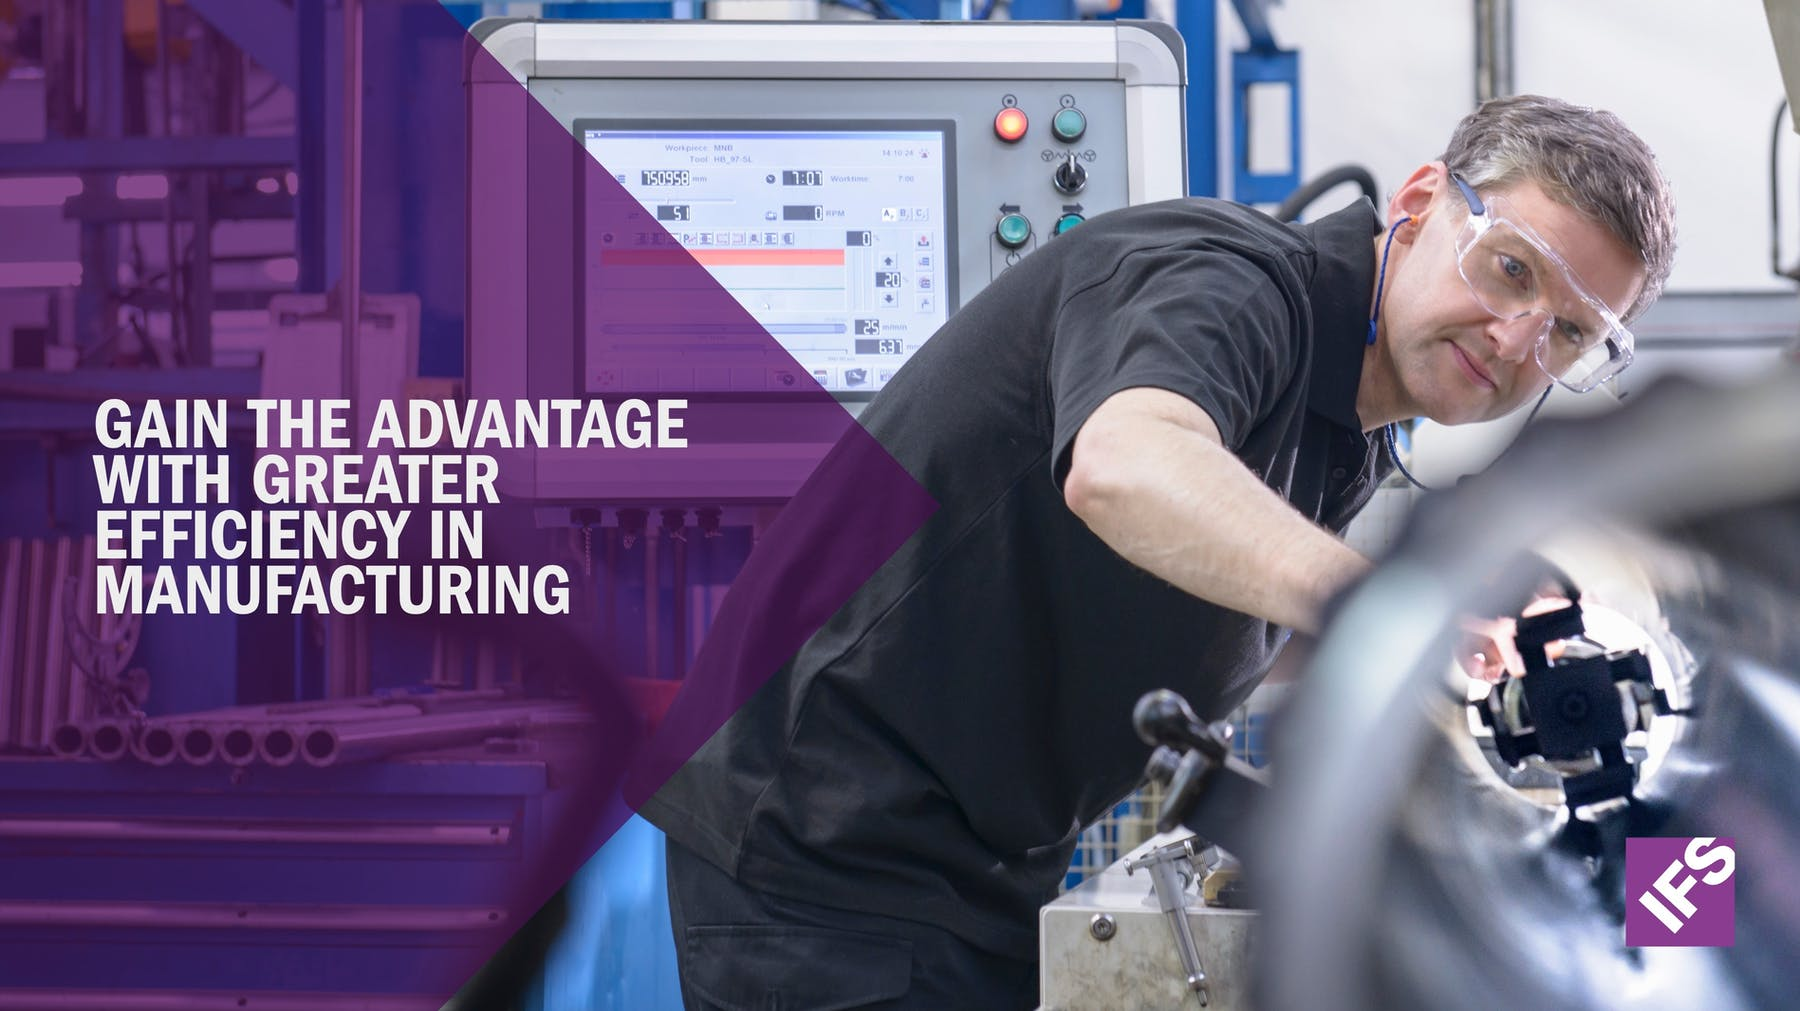 IFS Applications 10 White Paper - Gain the Advantage with Greater Efficiency in Manufacturing